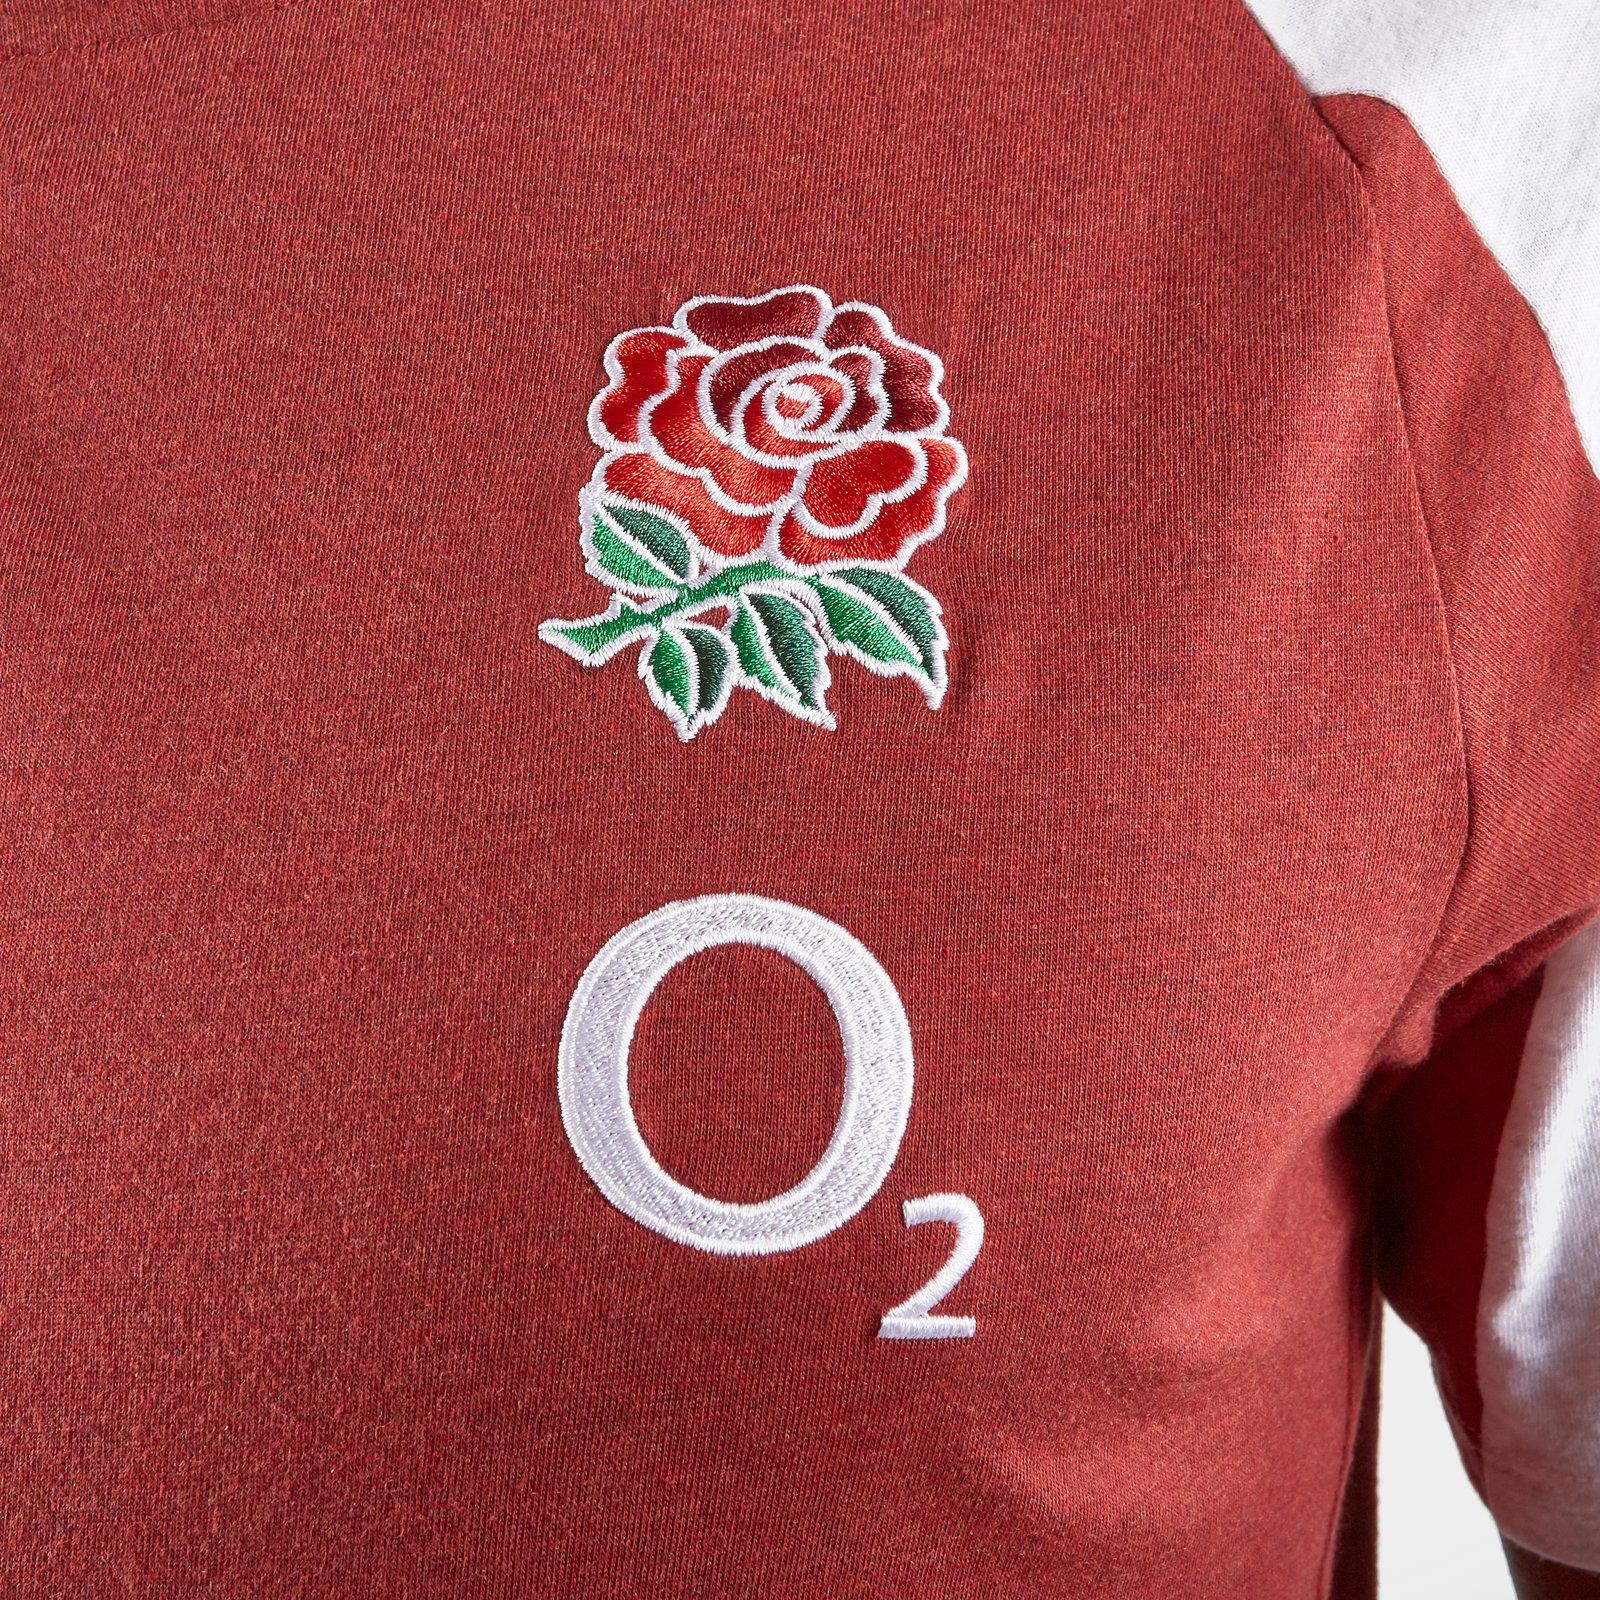 Canterbury Mens England 2019 20 Players Cotton Rugby Training T-Shirt Tee Top